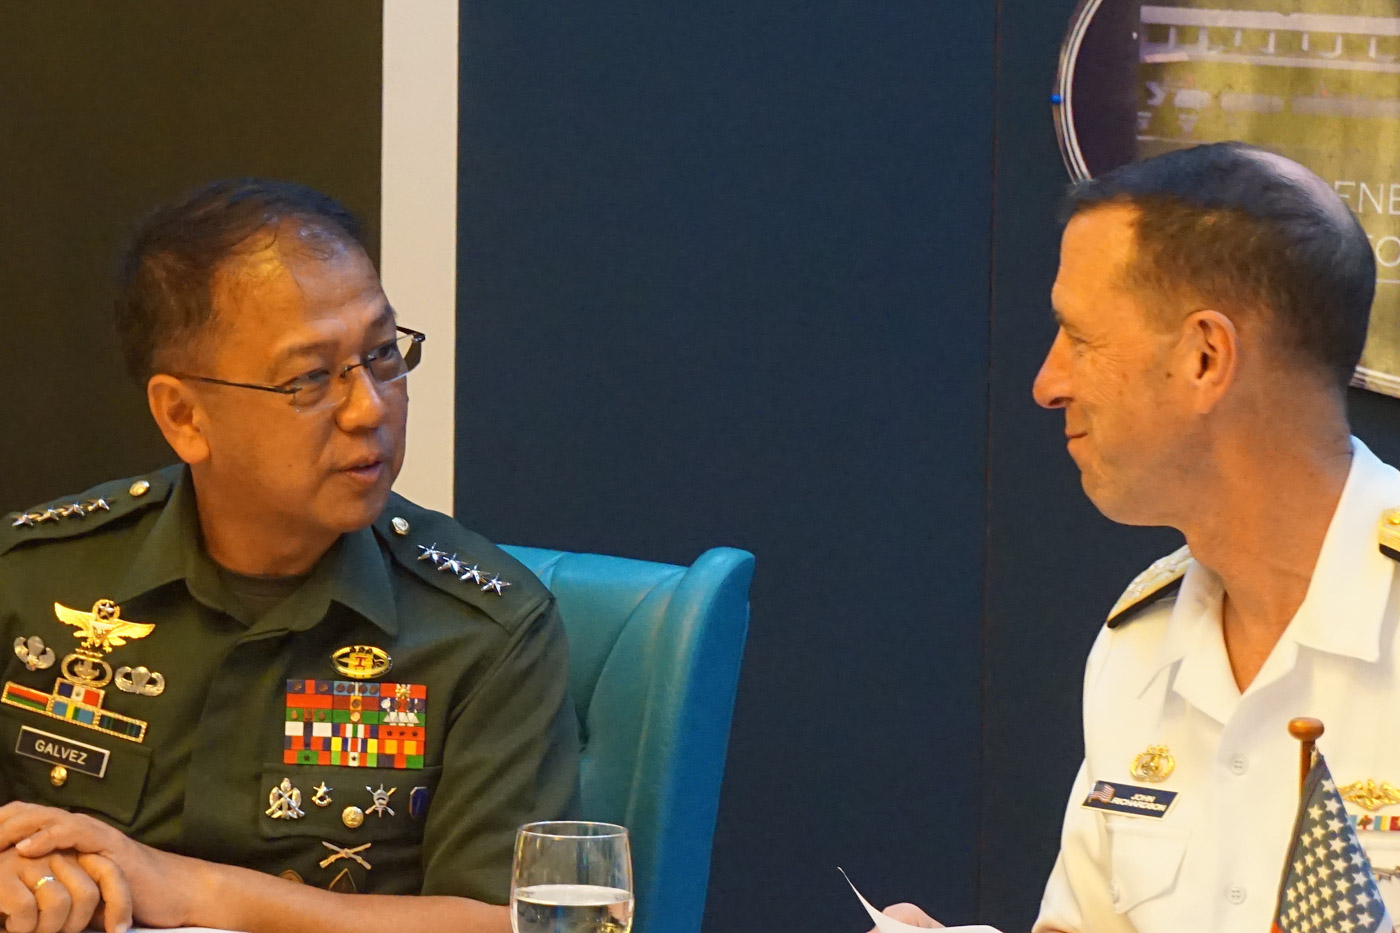 IRON-CLAD ALLIANCE. Armed Forces of the Philippines chief of staff General Carlito Galvez Jr and US chief of naval operations Admiral John Richardson hold a joint press conference while Chinese Foreign Minister Wang Yi is in Manila on October 29, 2018. Photo by Carmela Fonbuena/Rappler